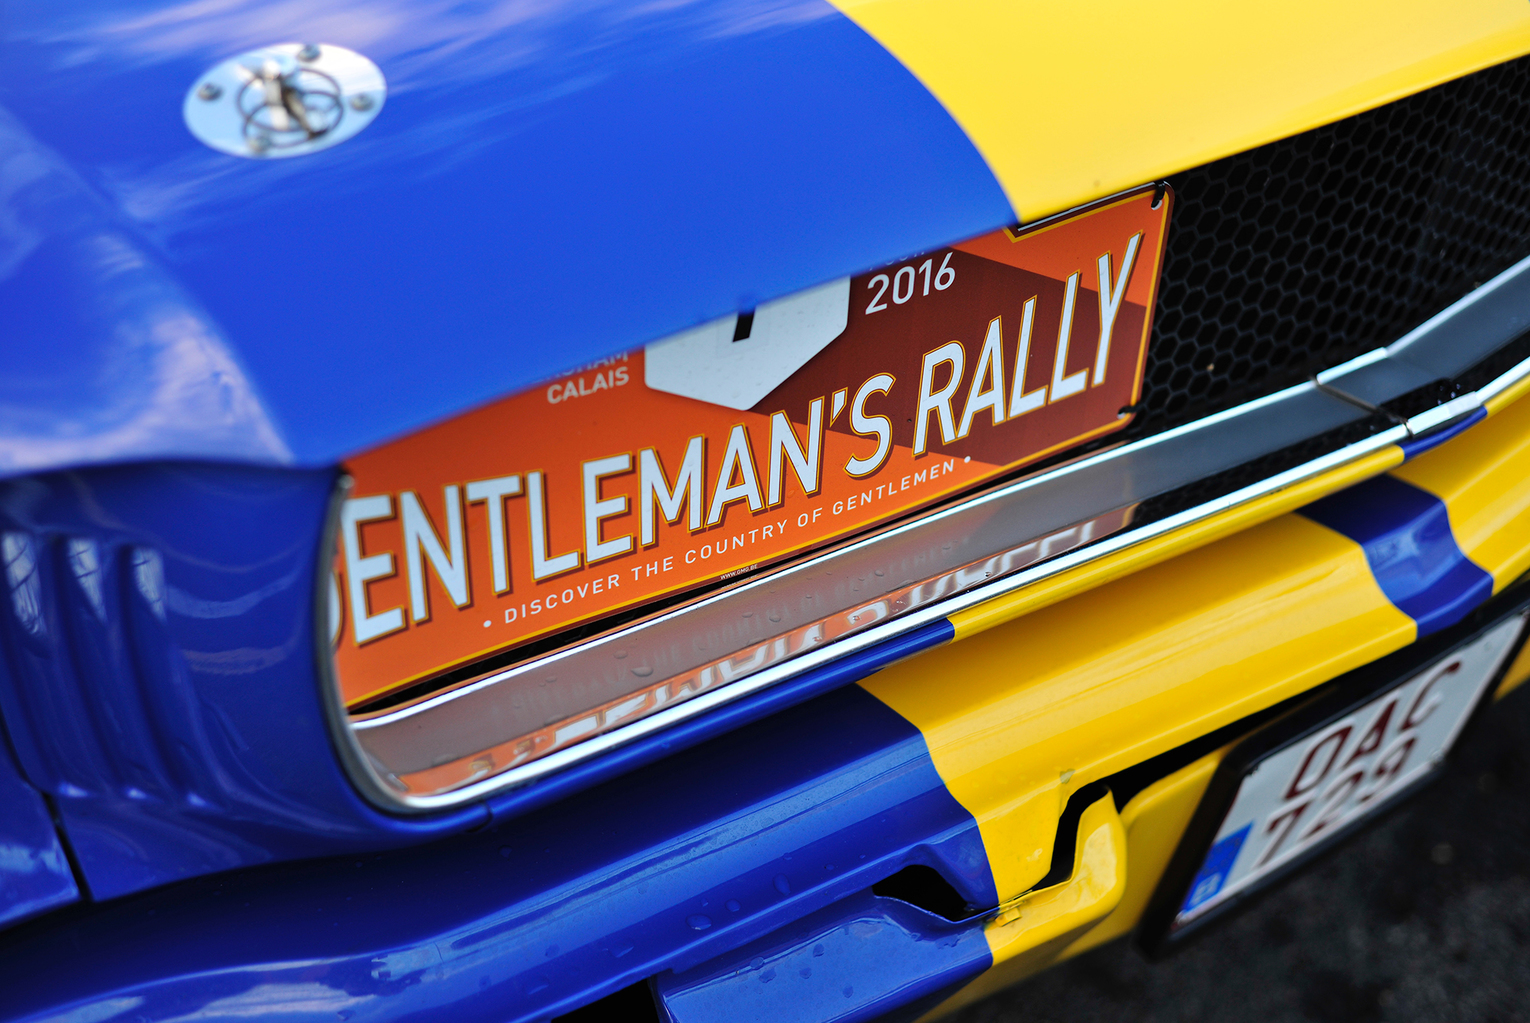 The Gentleman's Rally 1 / UK / 2016